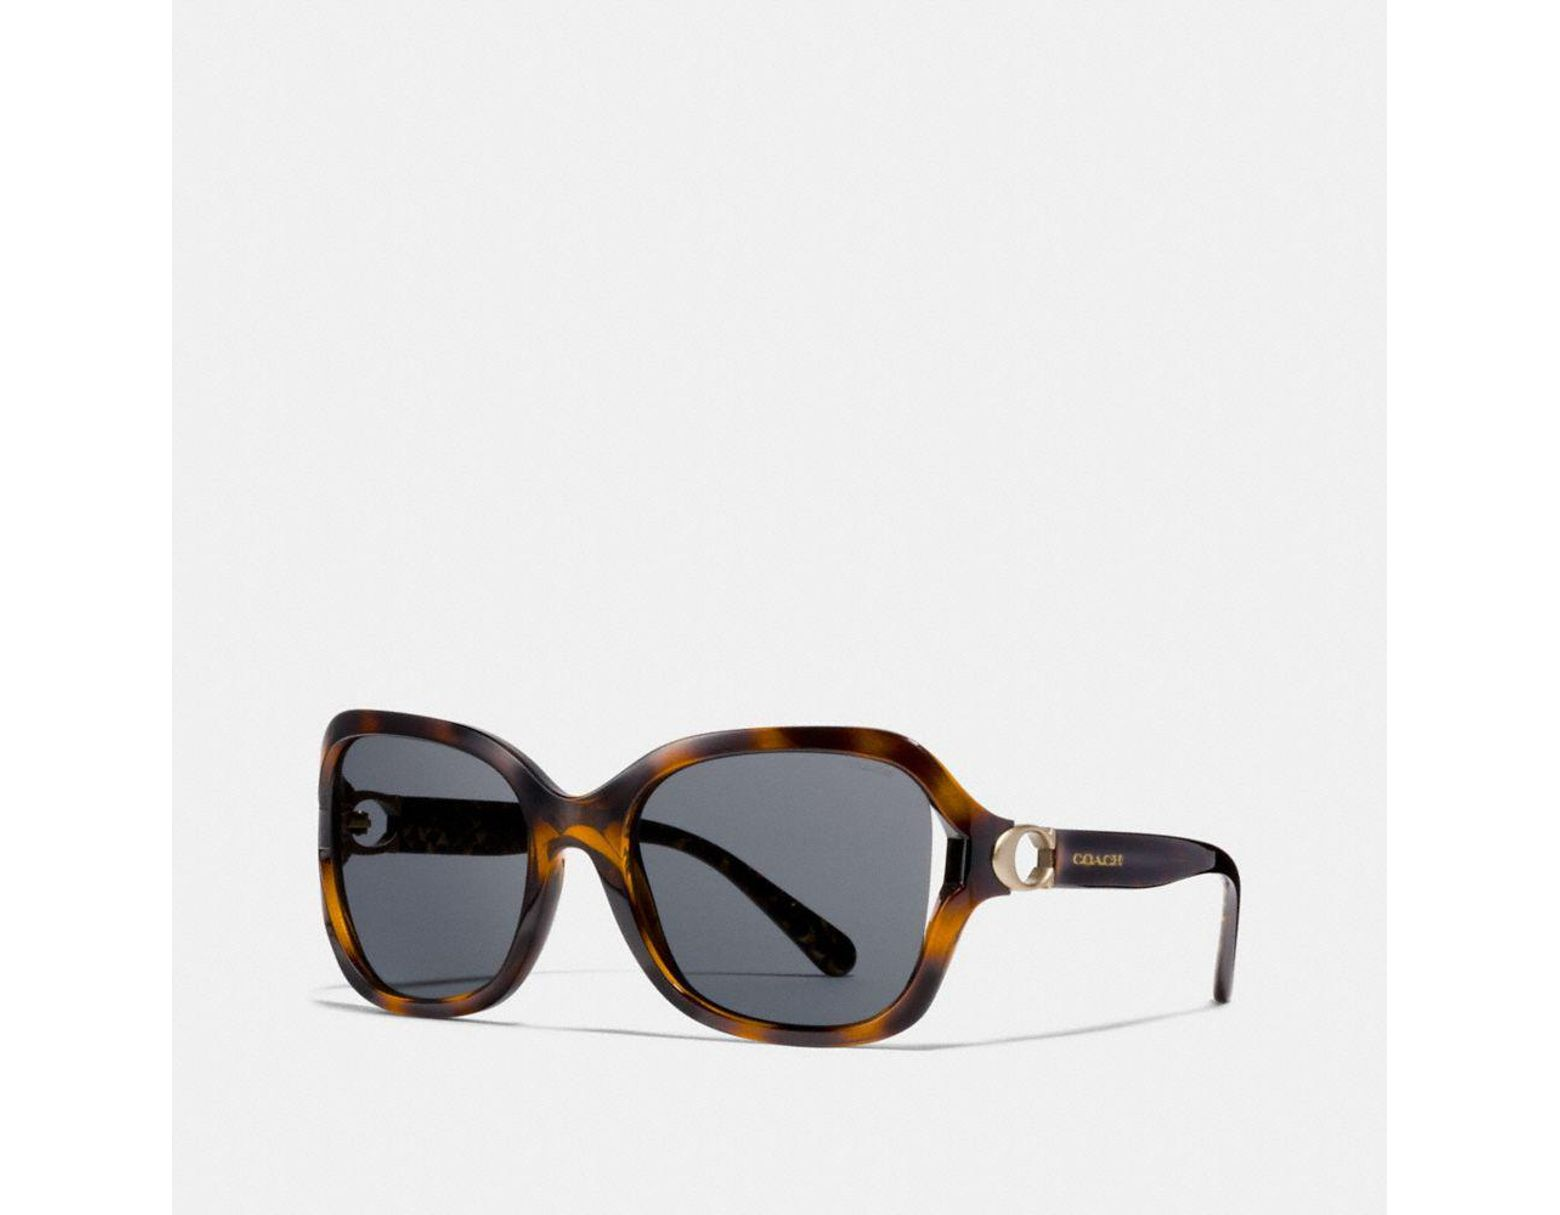 a3b85bc82784 COACH Signature Hardware Rectangle Sunglasses in Brown - Lyst